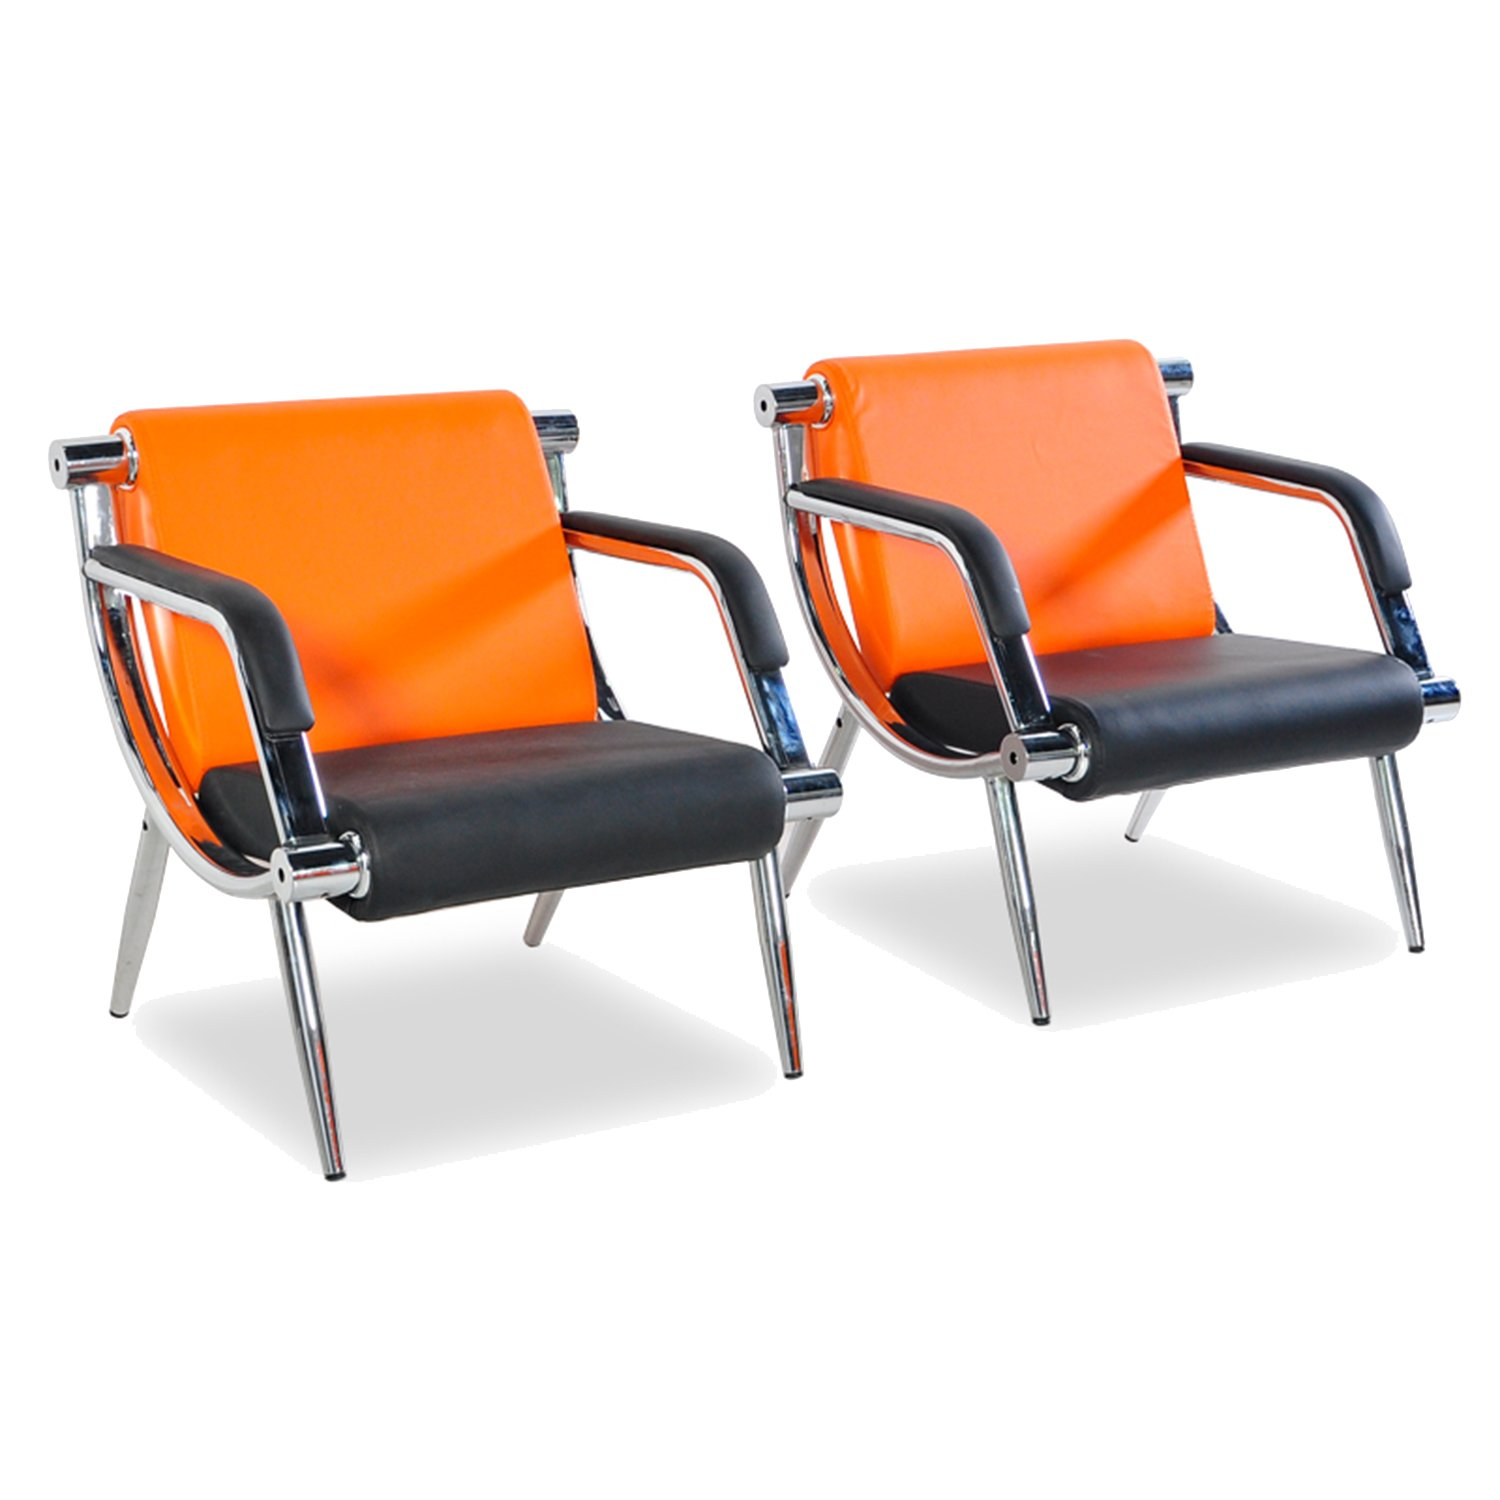 Bestmart INC 2 Pcs PU Leather Office Reception Chair Executive Side Waiting Room Visitor Guest Sofa Seats